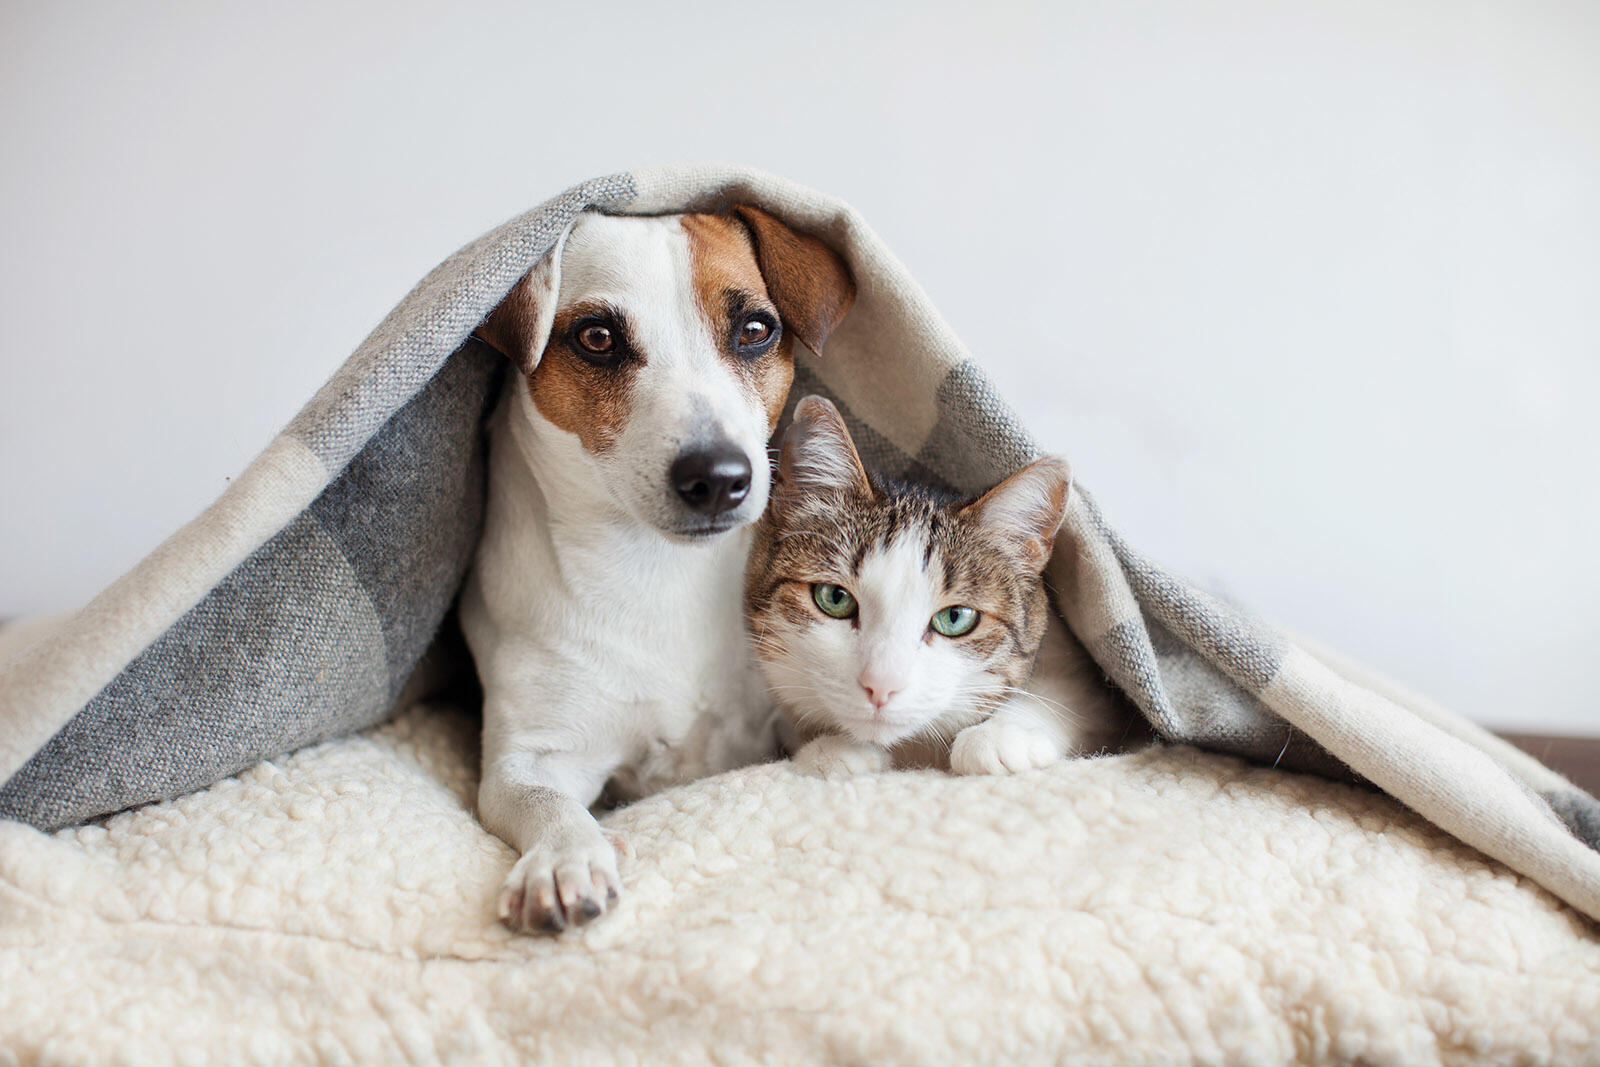 Dog and cat cuddling under covers